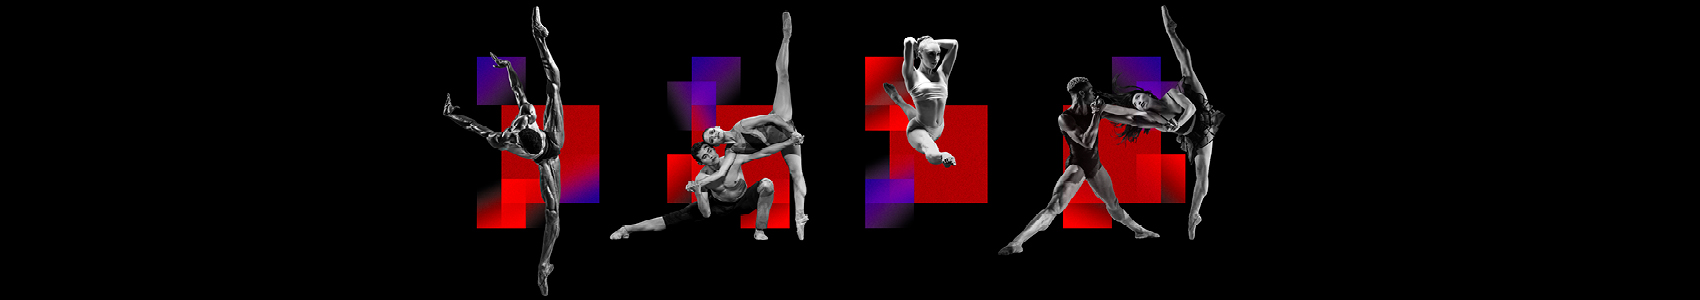 Complexions Contemporary Ballet - A Matchless American Dance Company